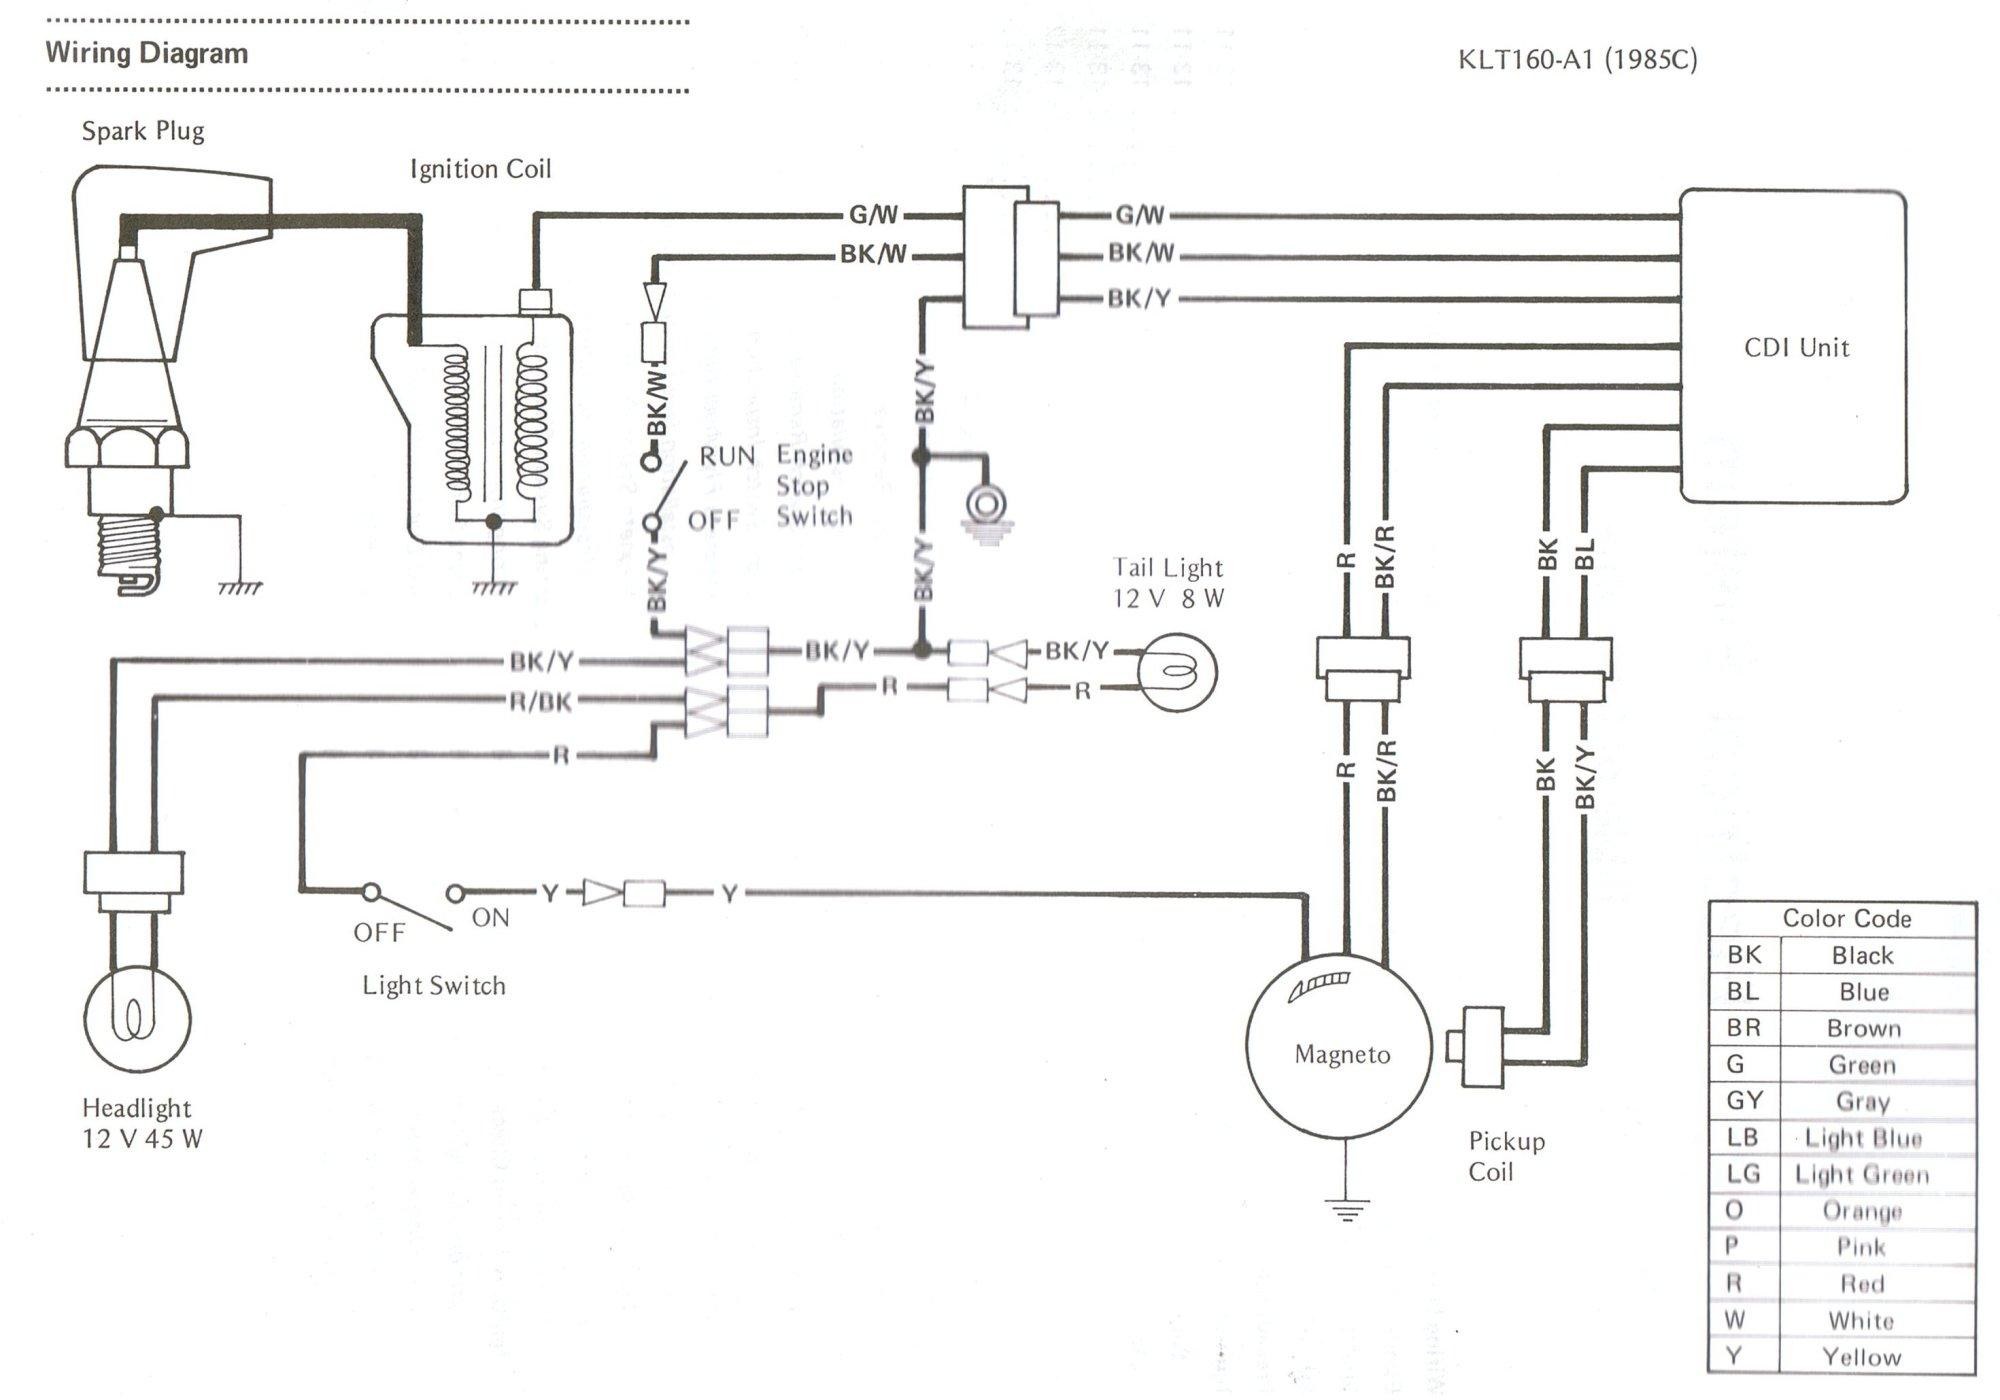 hight resolution of kawasaki prairie 4 wheeler wiring diagram starting know about kawasaki prairie 300 wiring diagram 97 kawasaki